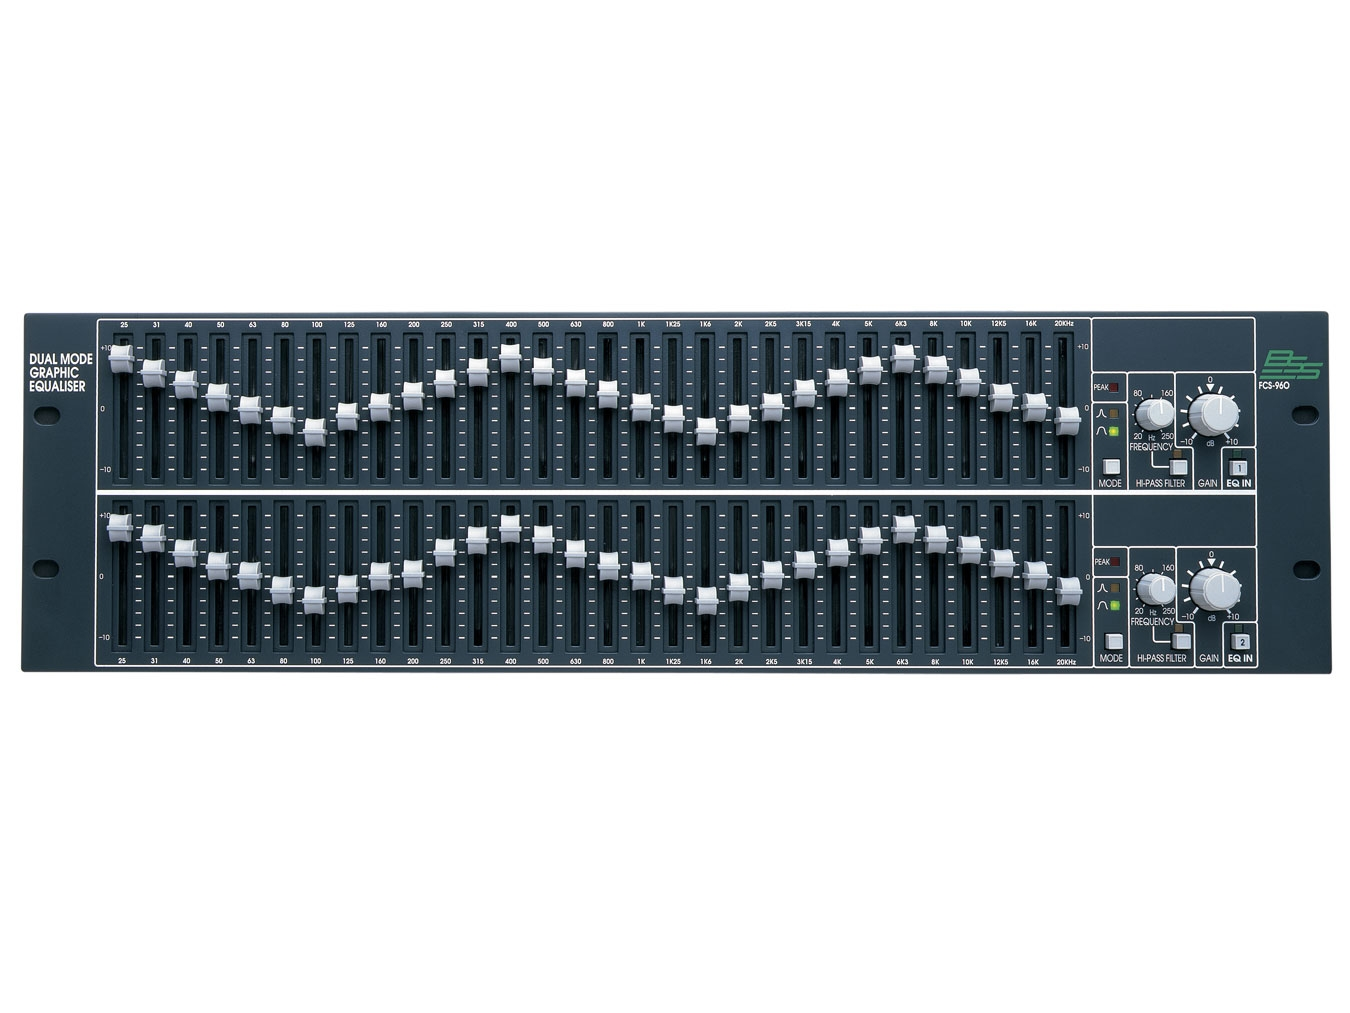 Bss Fcs 960 30 Band Dual Mode Graphic Equalizer 2 Channels Audio Pas